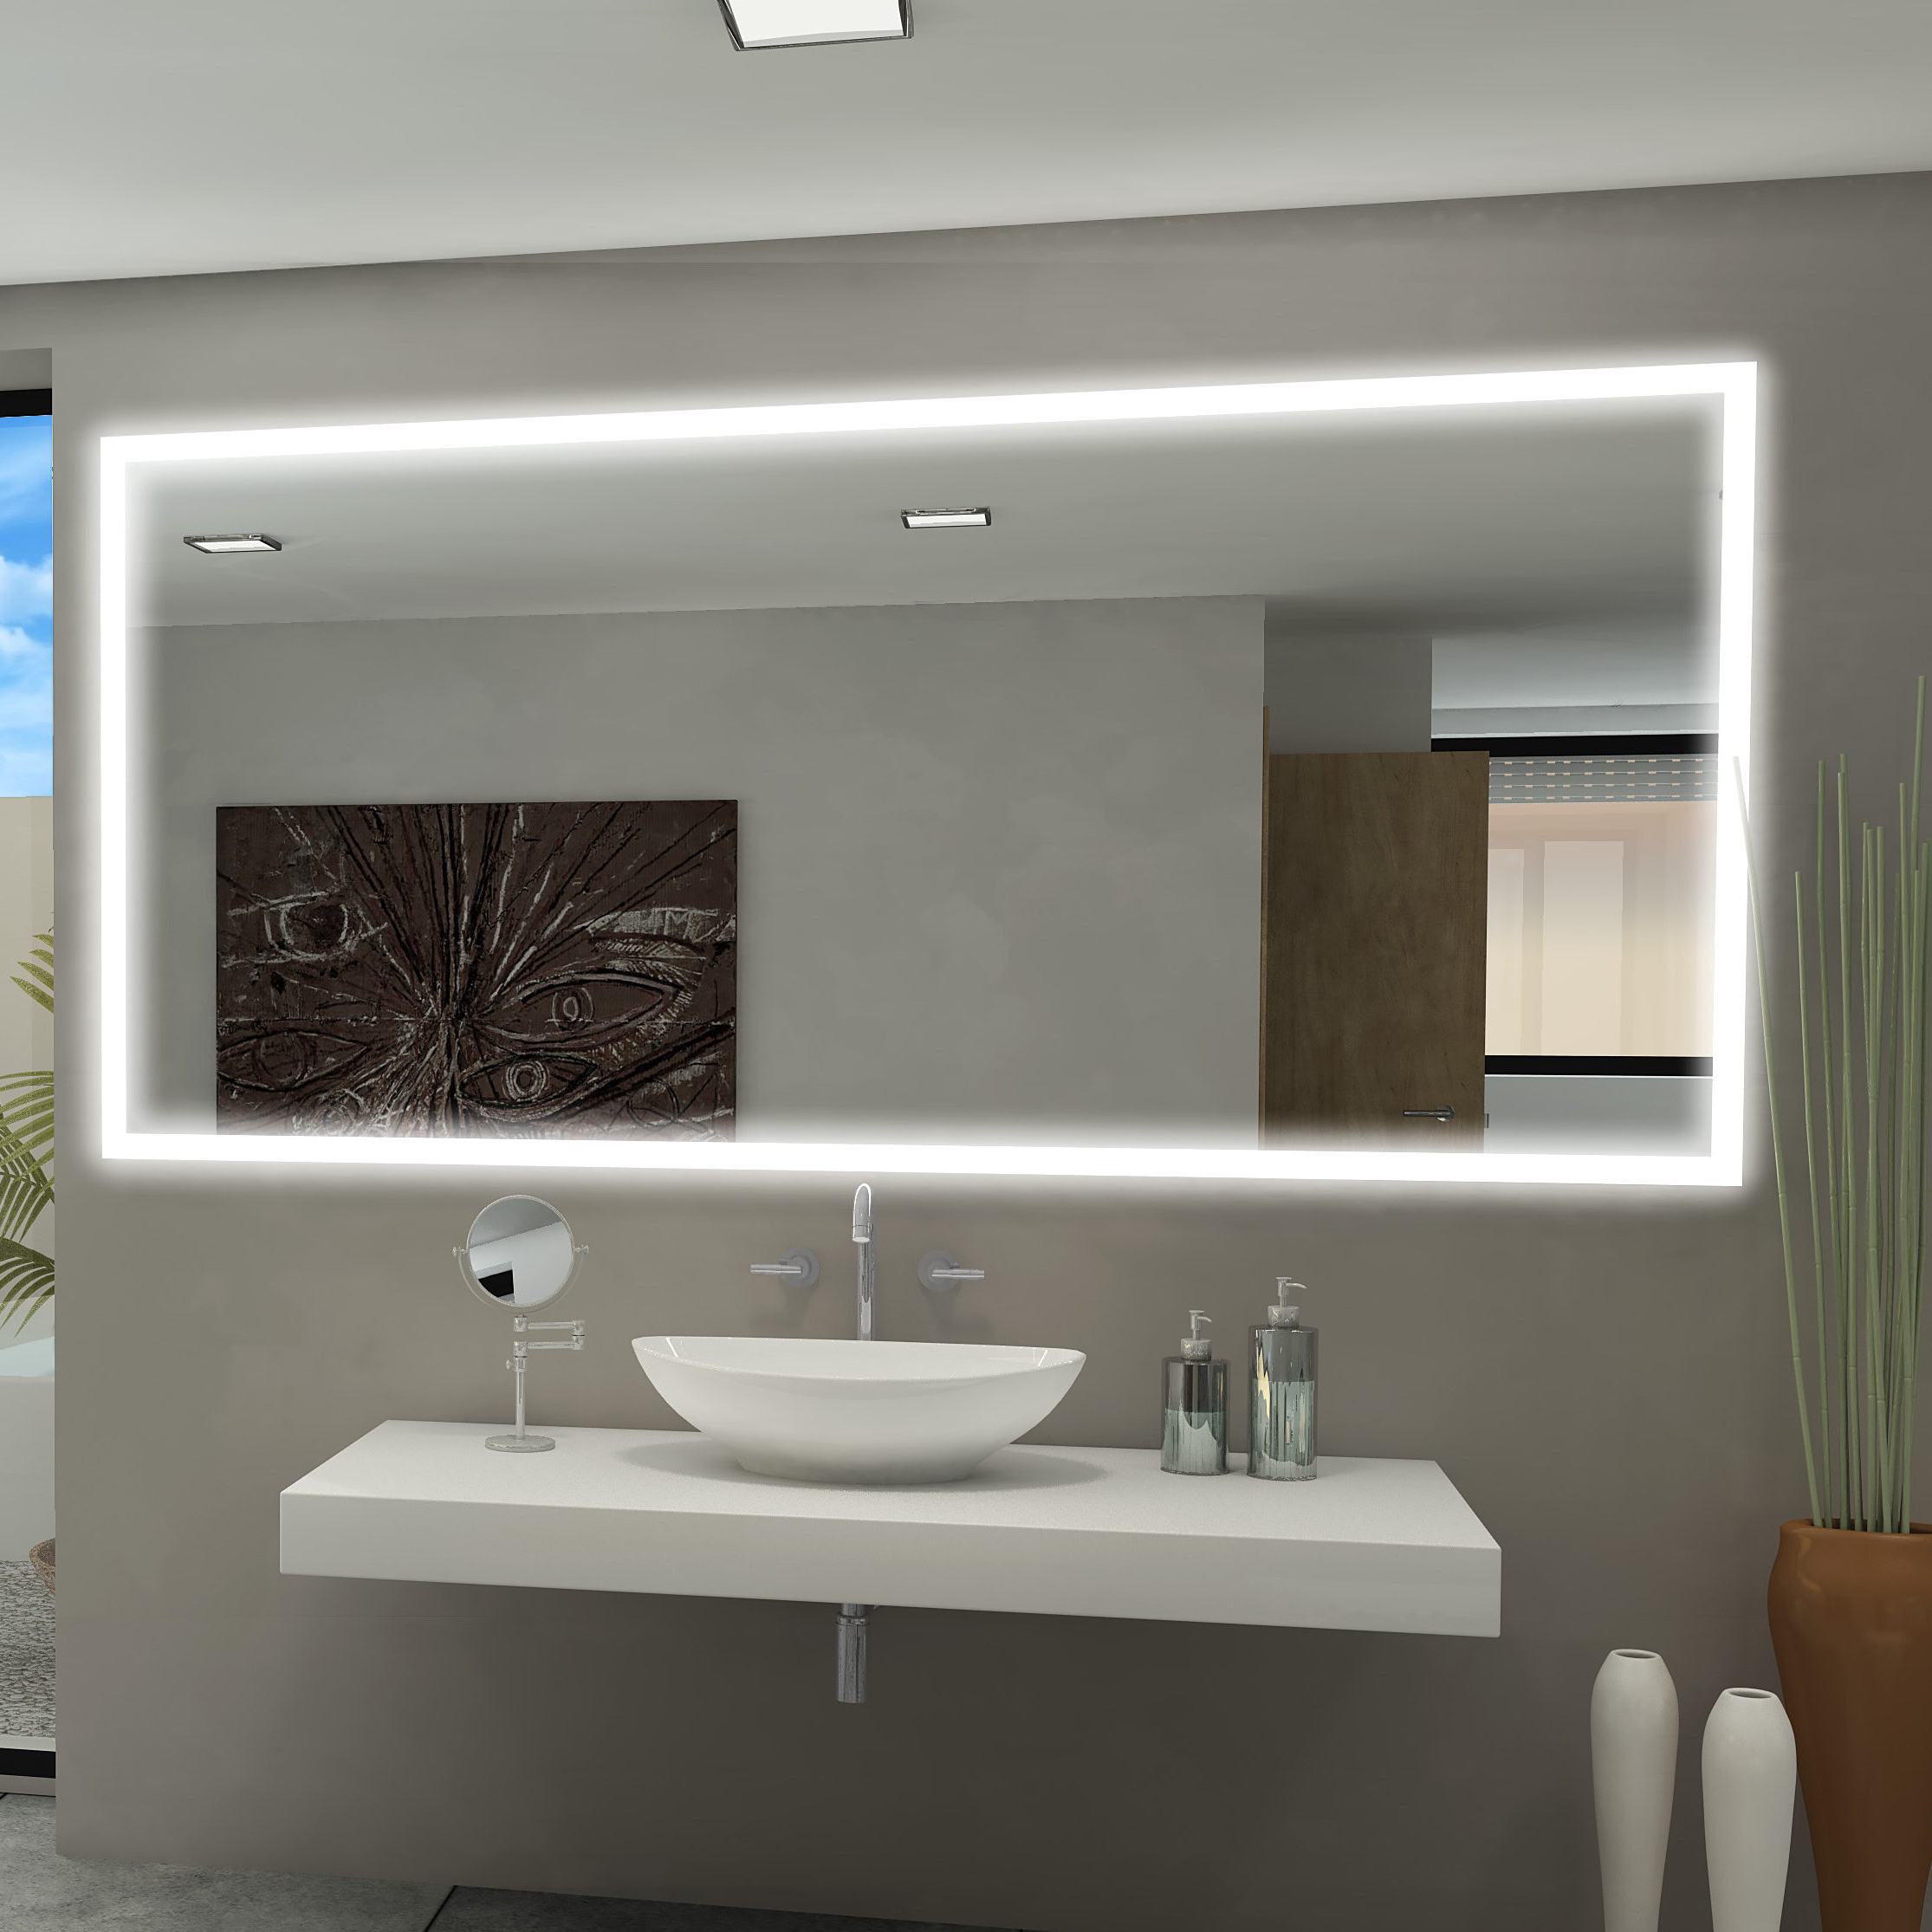 Backlit Wall Mirrors Inside Most Popular Rectangle Backlit Bathroom/vanity Wall Mirror (View 17 of 20)